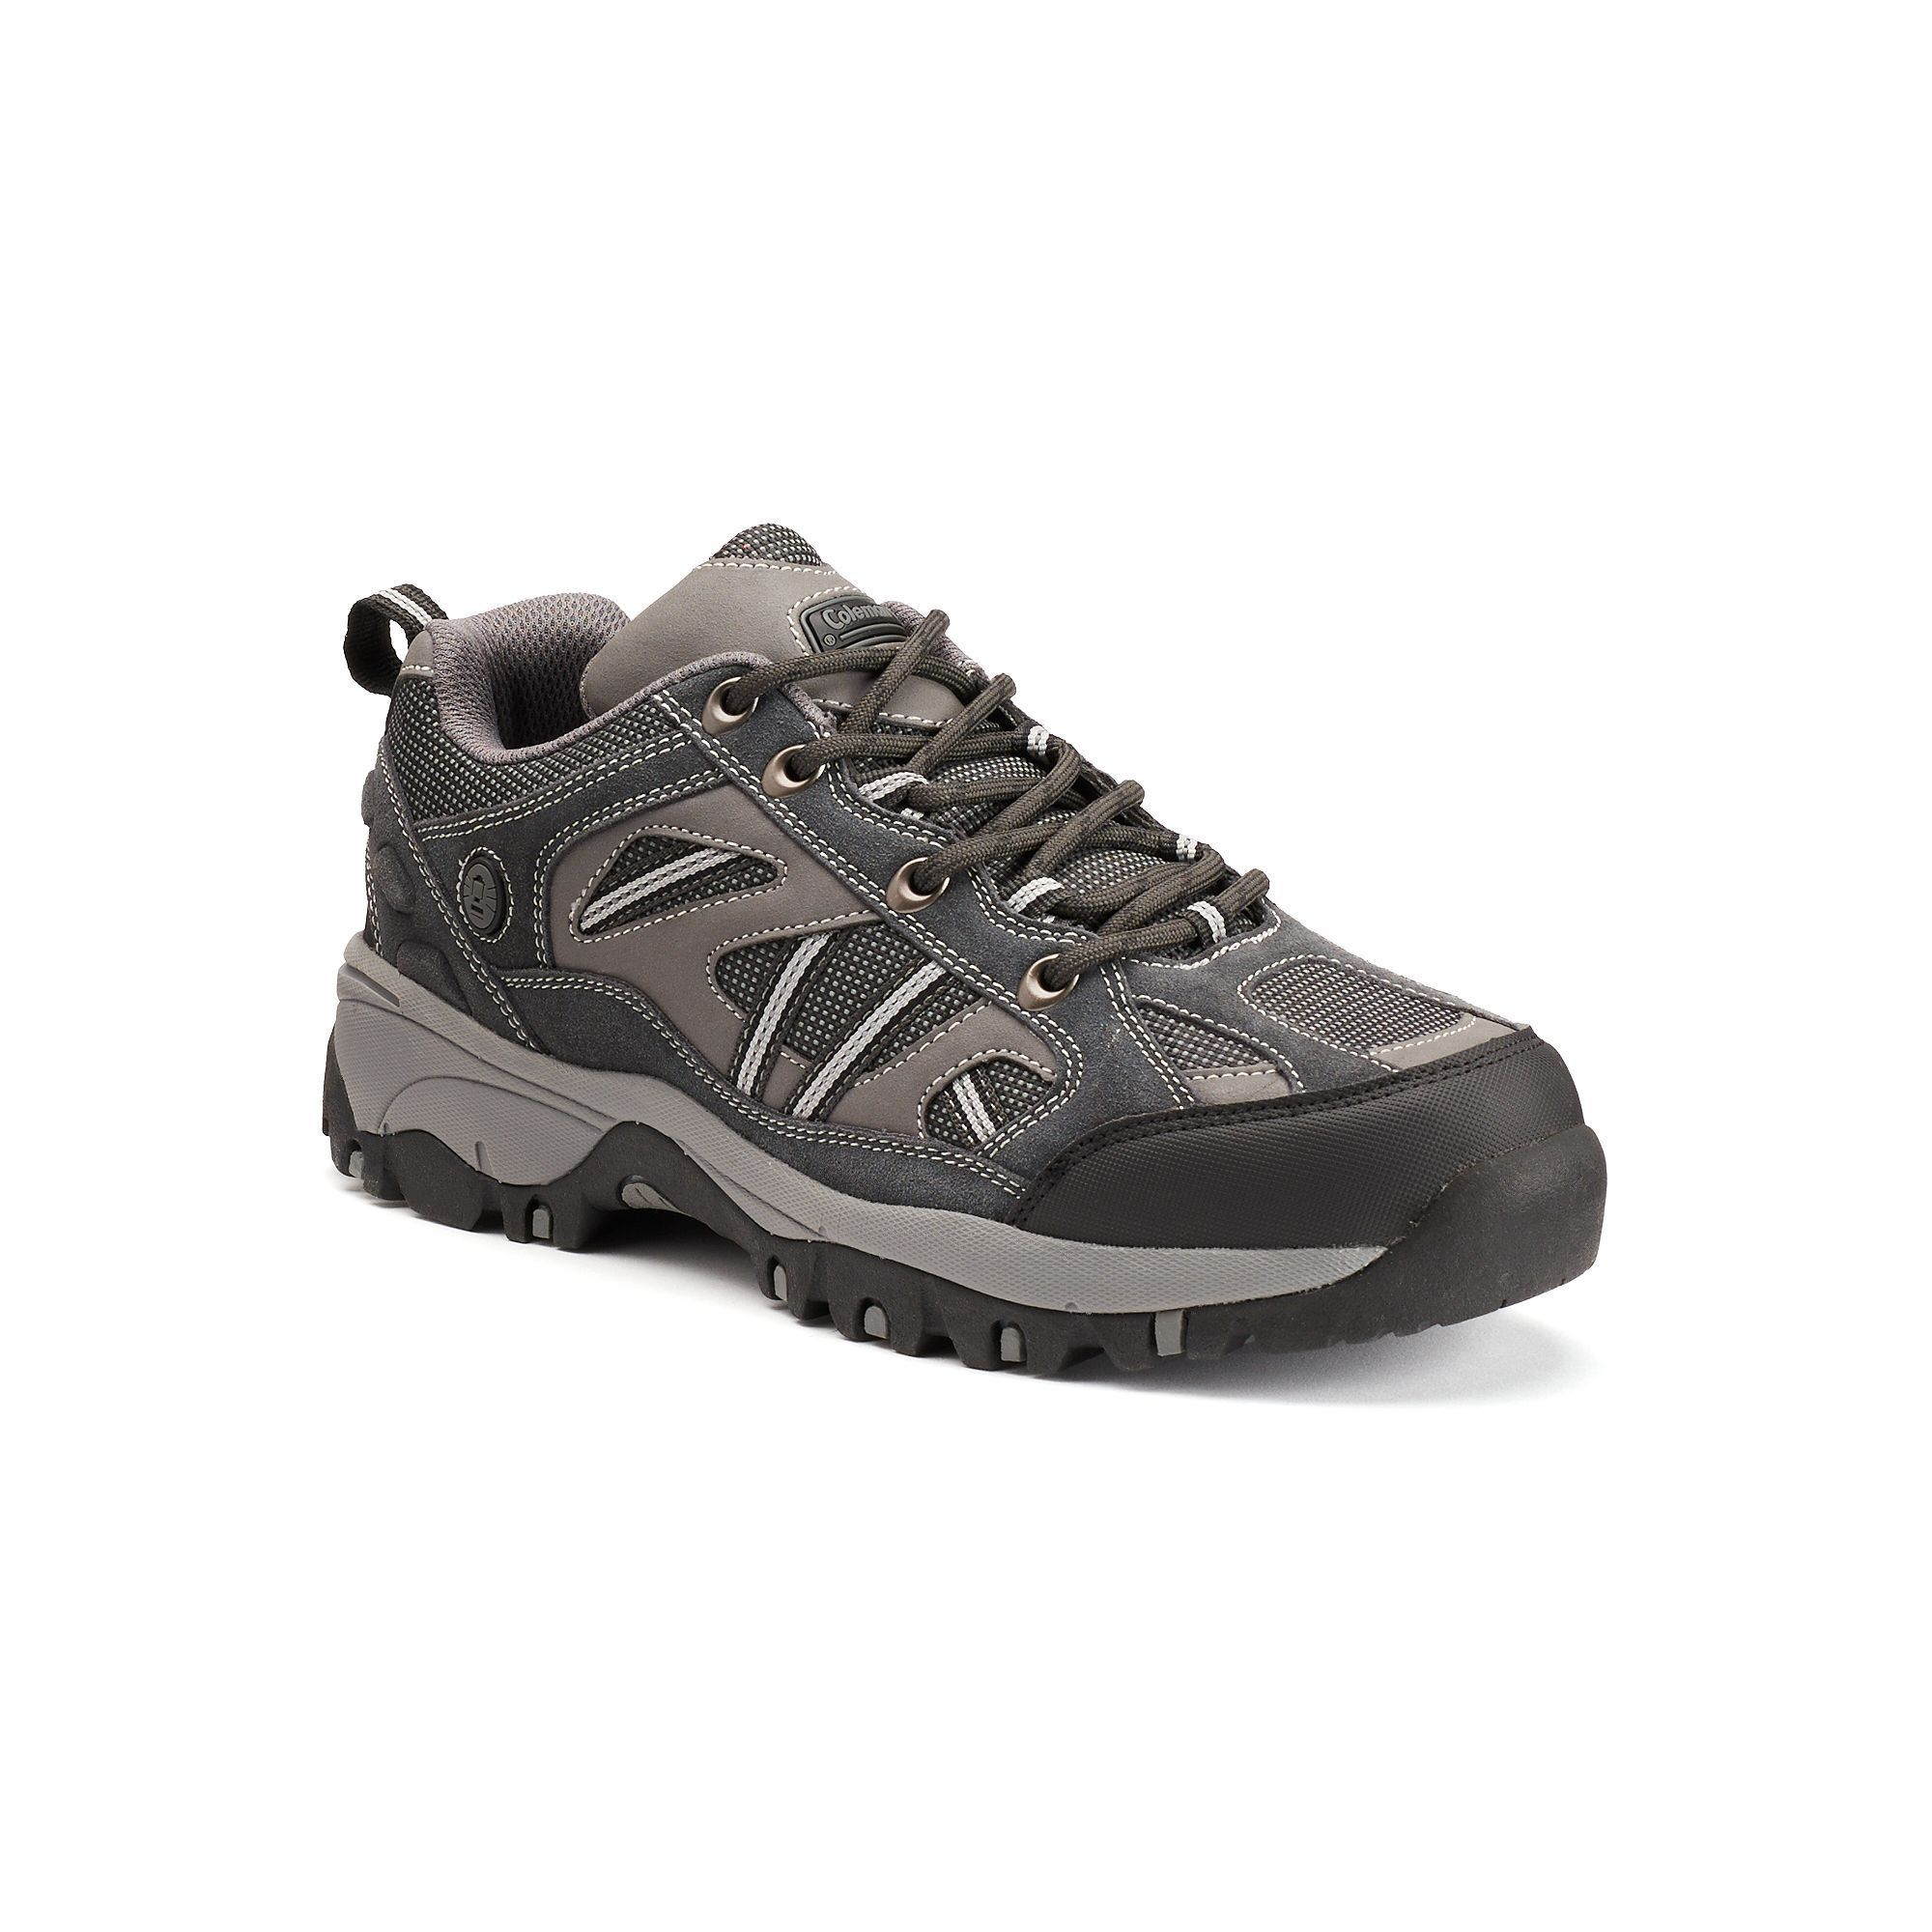 wholesale price Coleman Radius Men's Hiking ... Shoes perfect cheap online QMdd7e